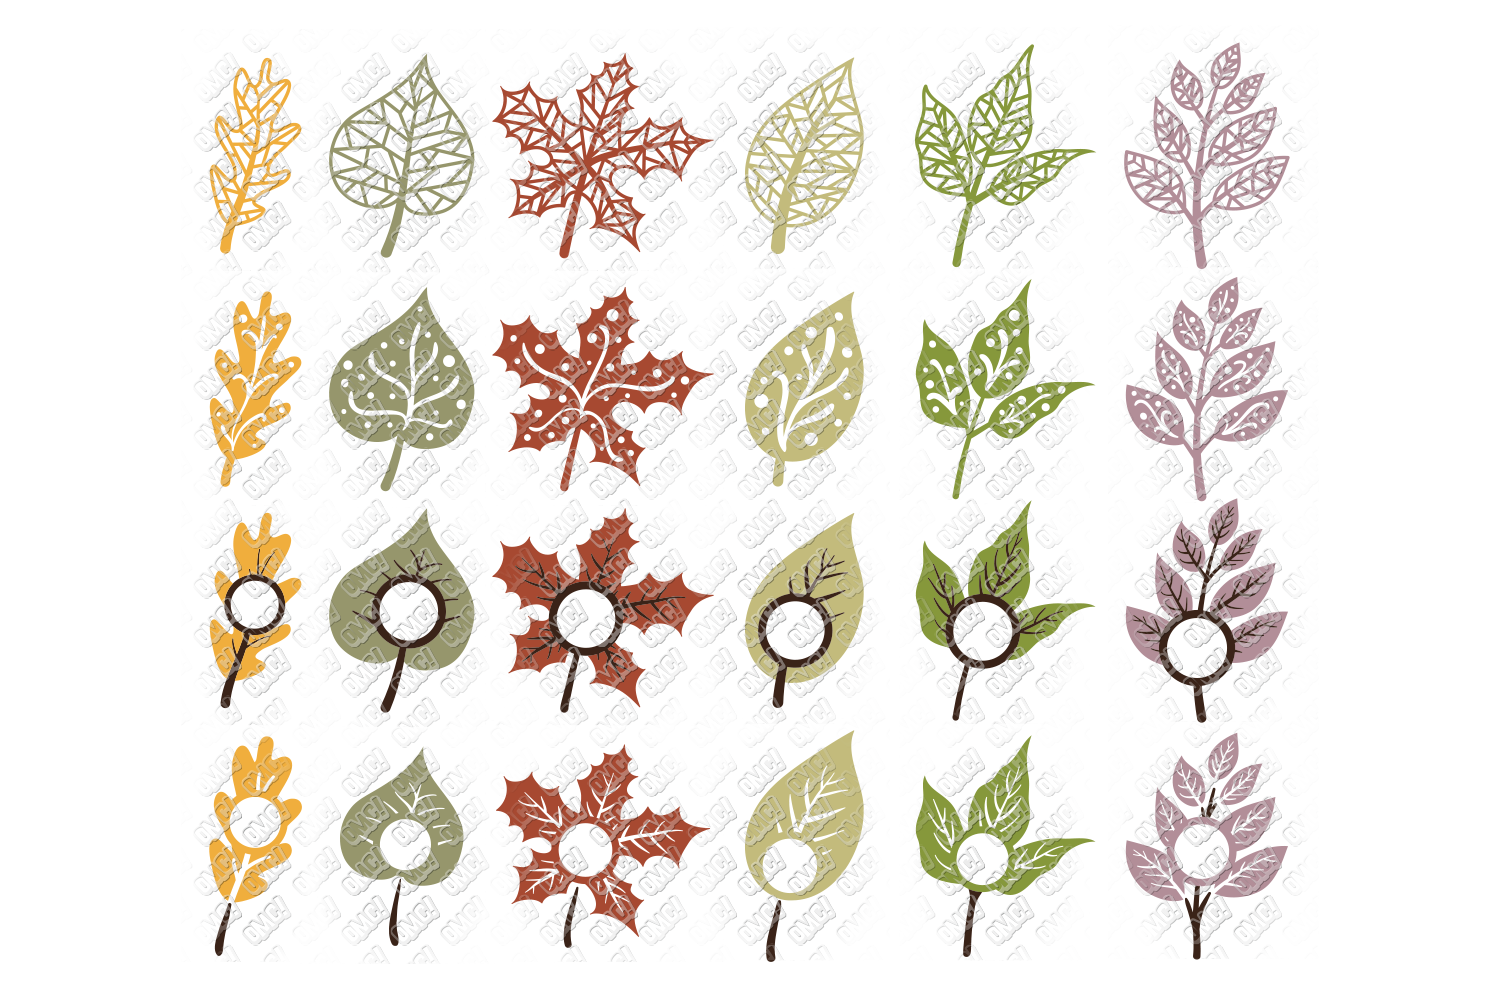 Leaf SVG Fall Leaves Autumn in SVG, DXF, PNG, EPS, JPEG example image 3